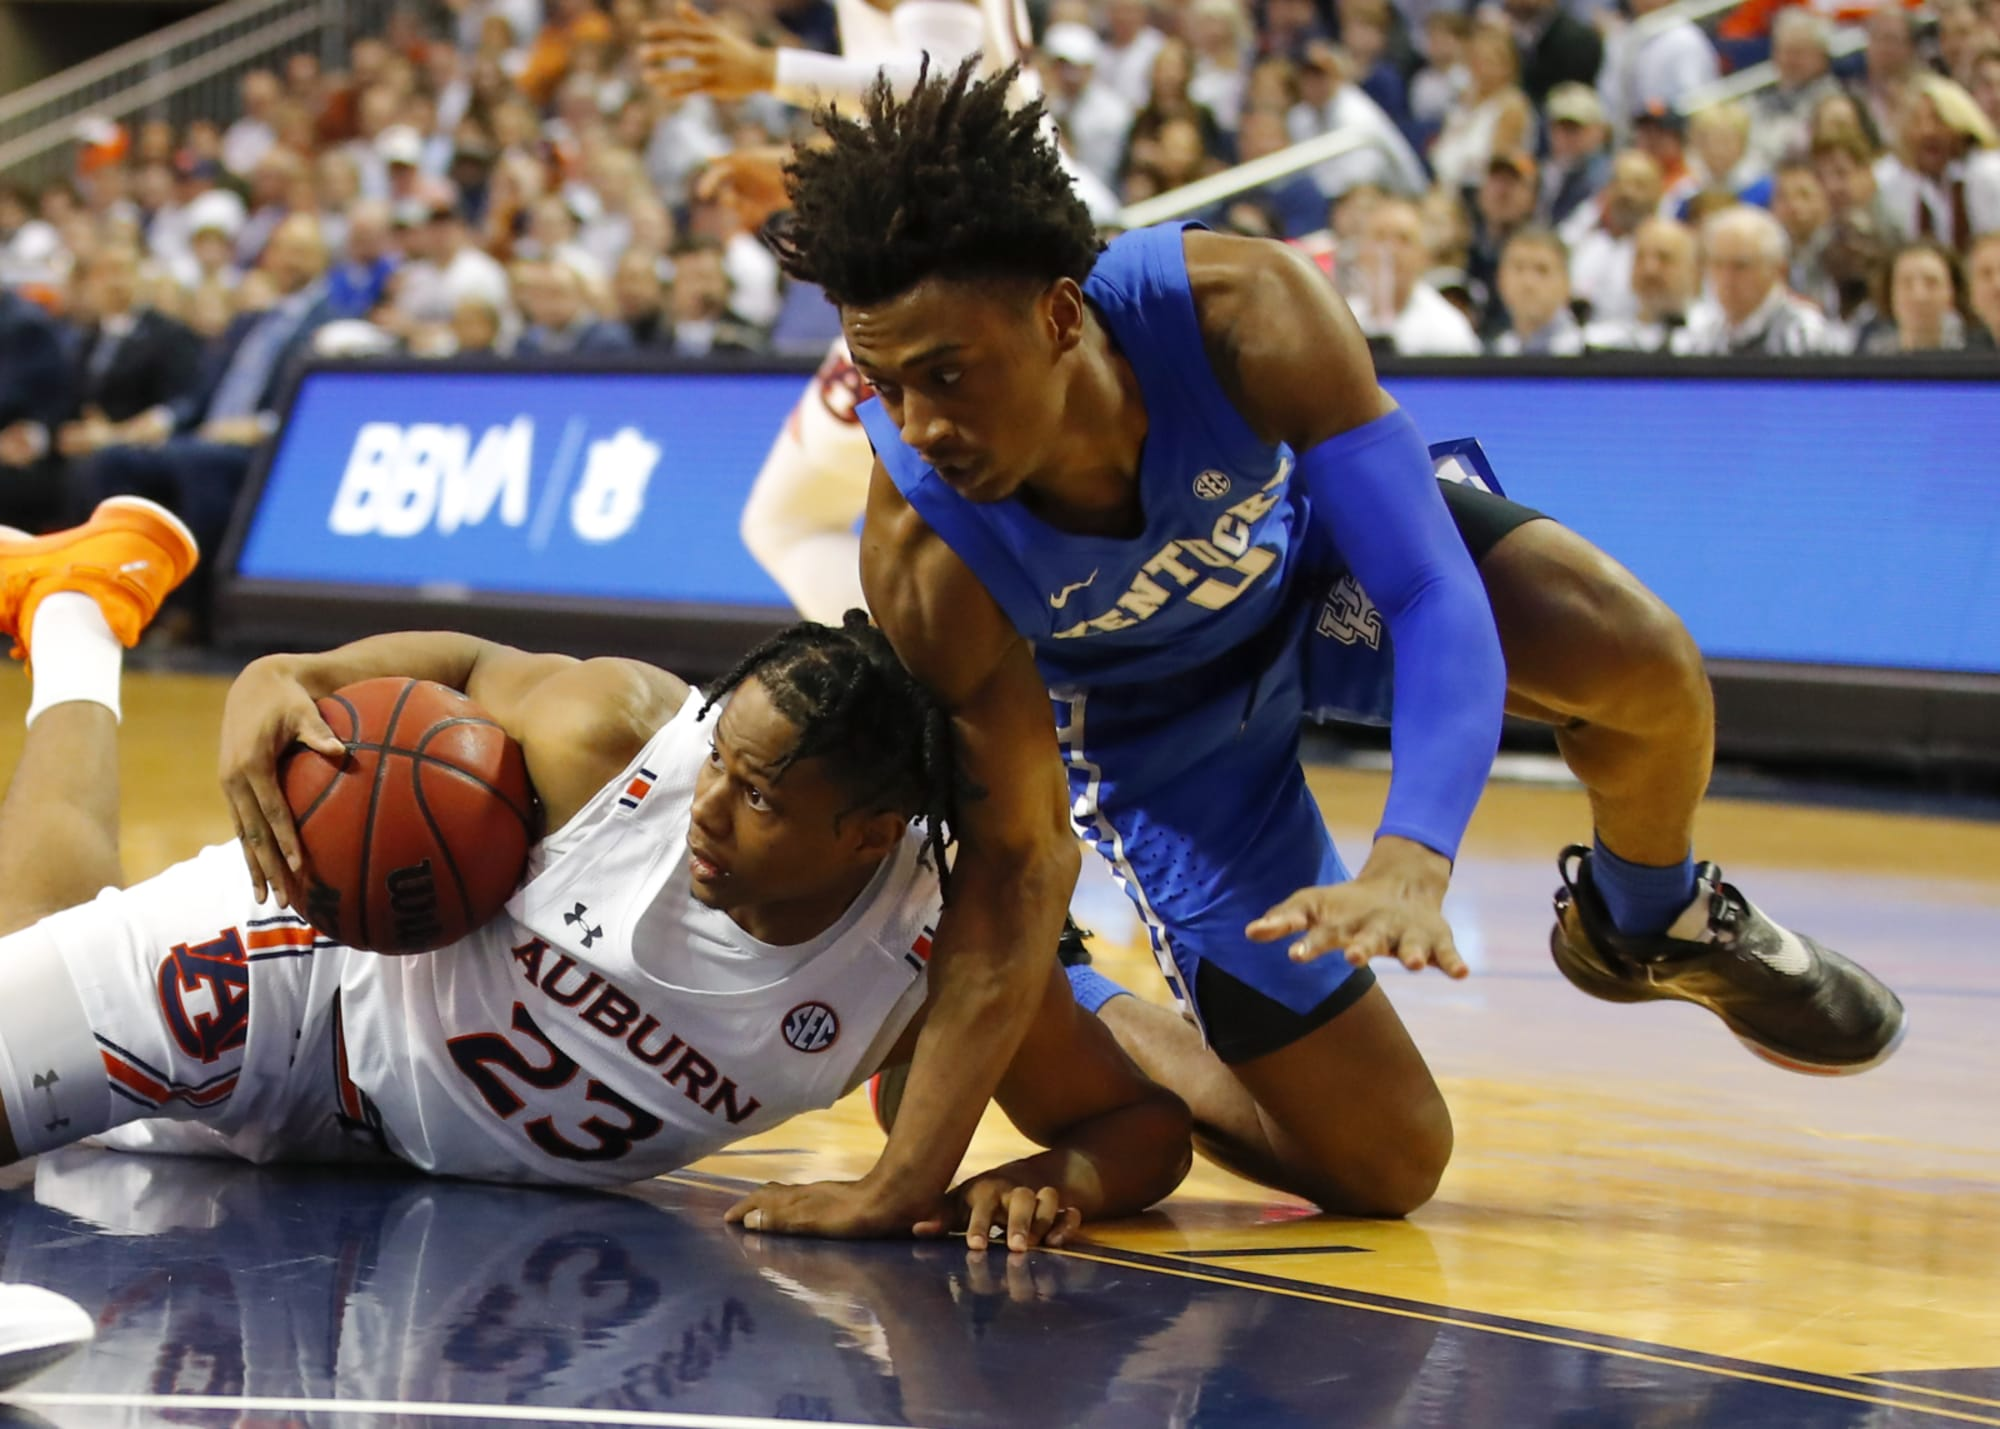 Cavs 2020 NBA Draft: Even if 3 part doesn't come, defense would justify Isaac Okoro pick